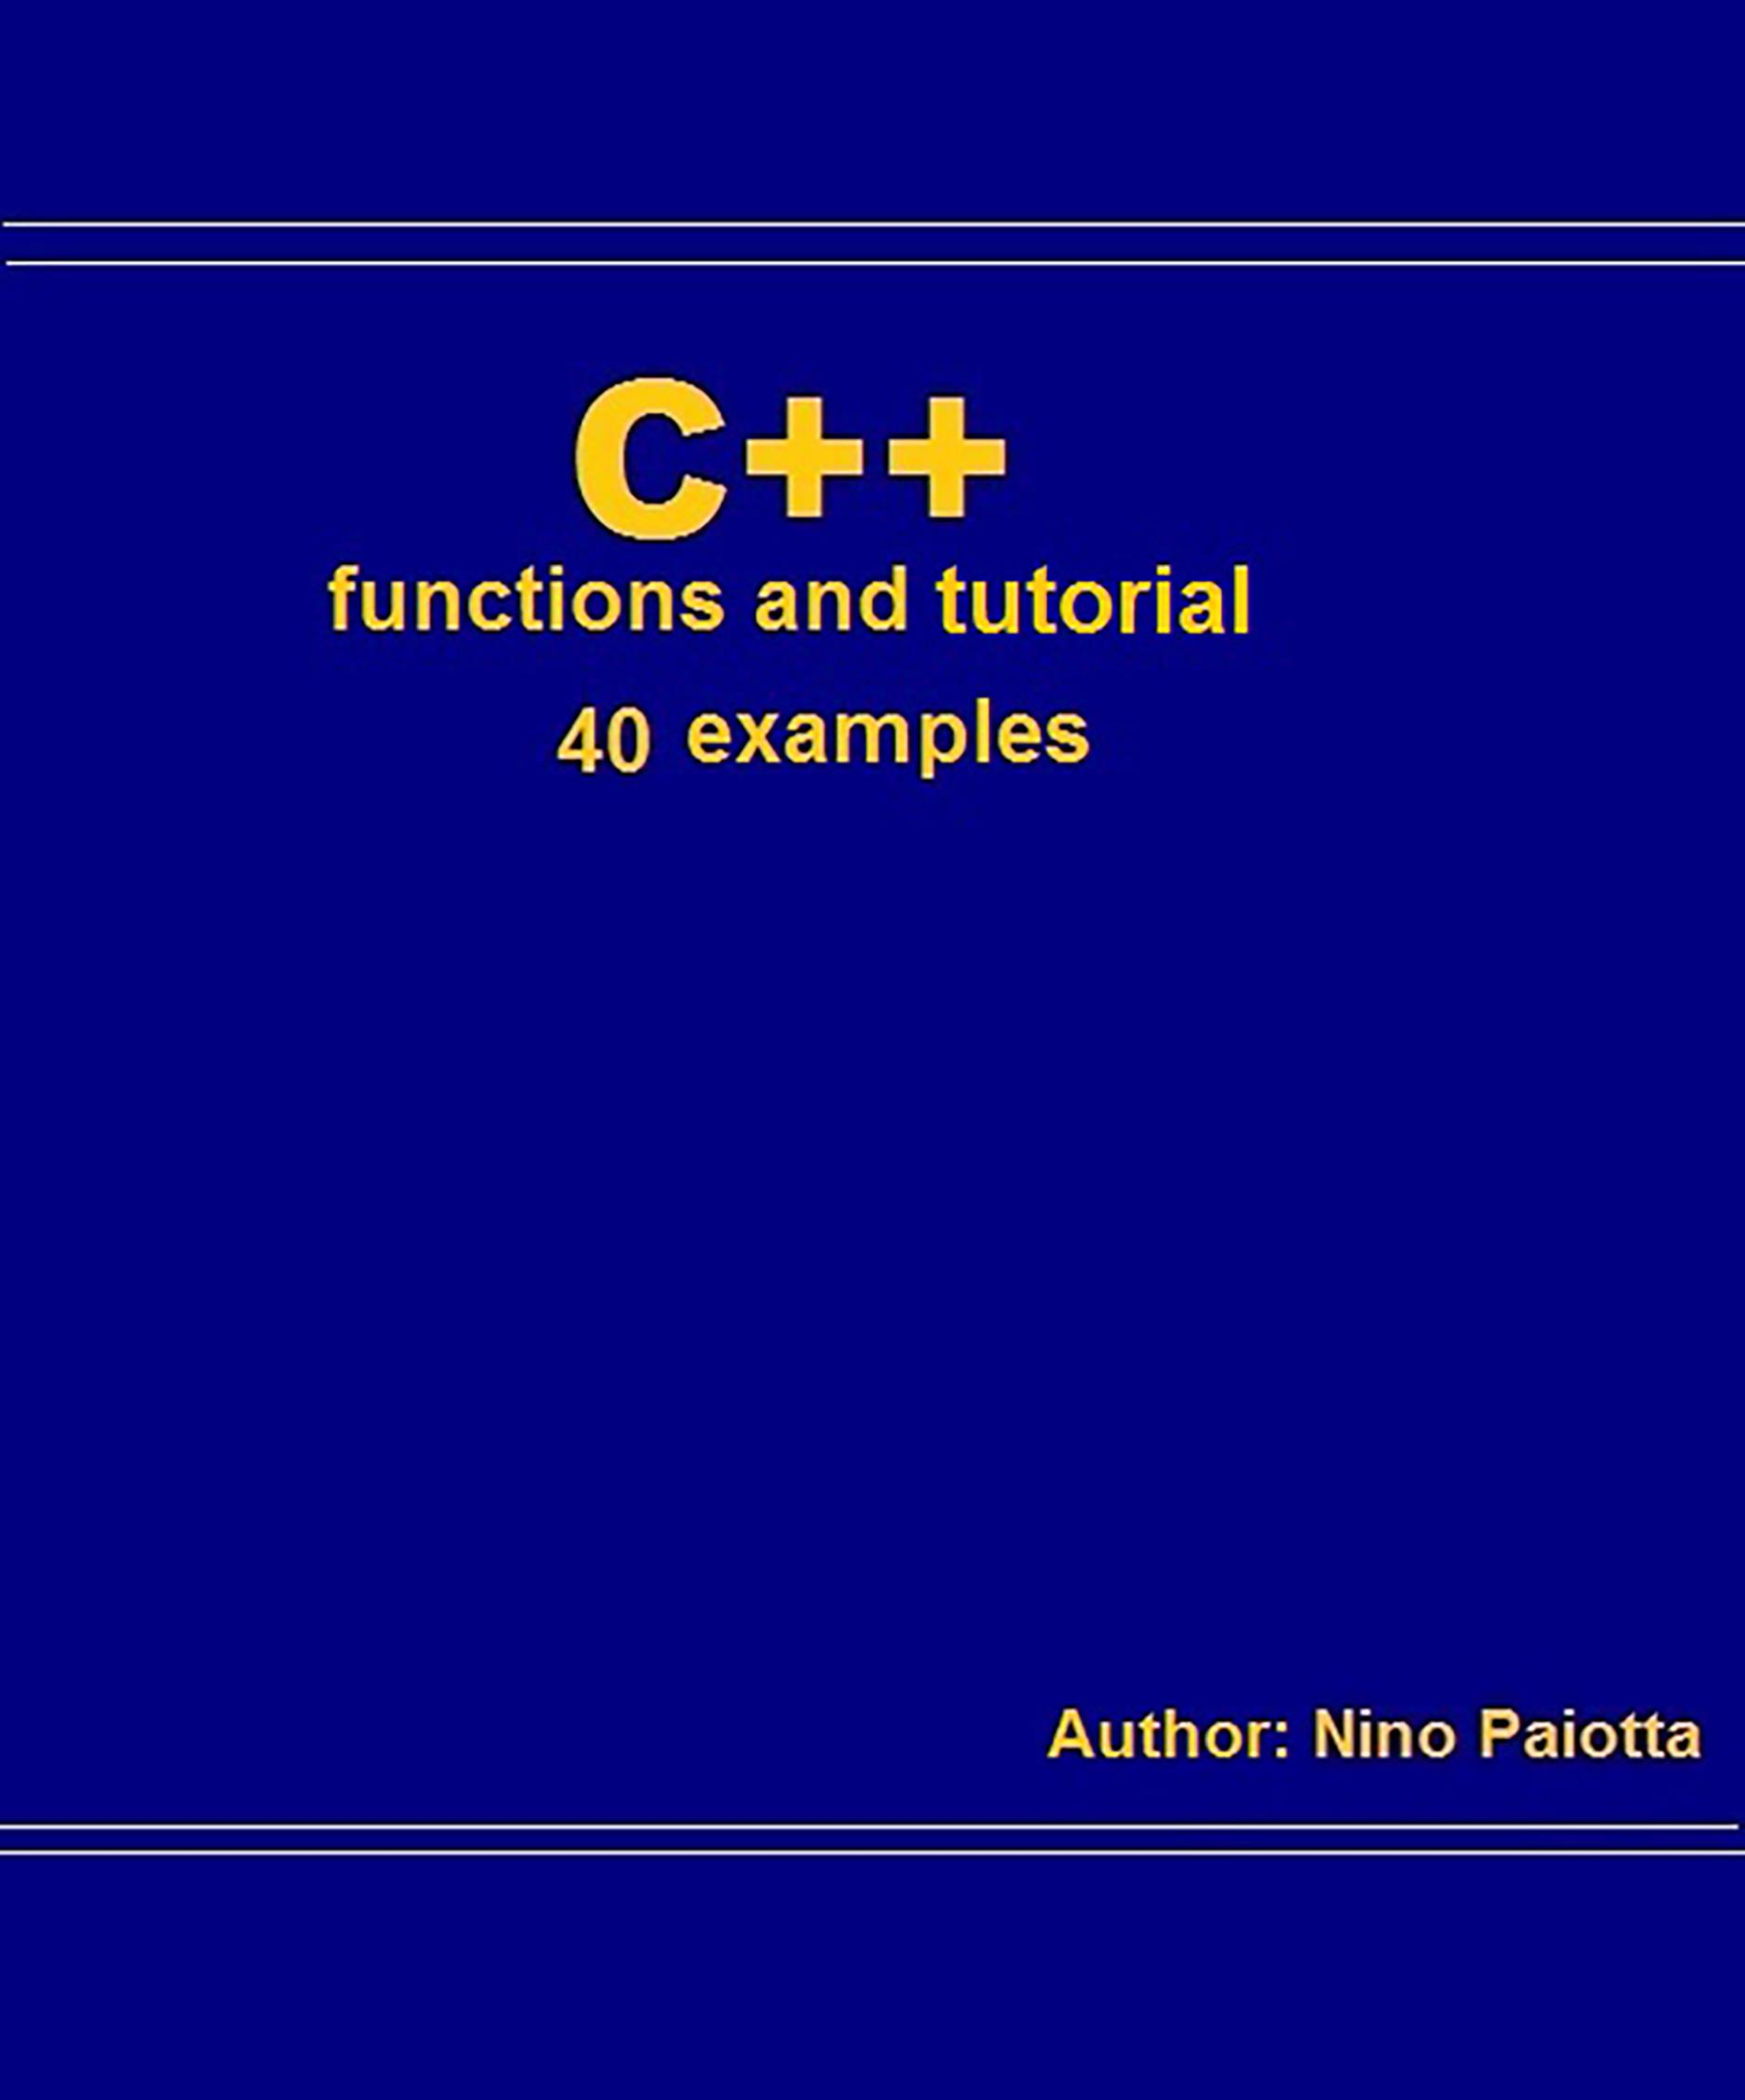 C++ Functions and tutorial